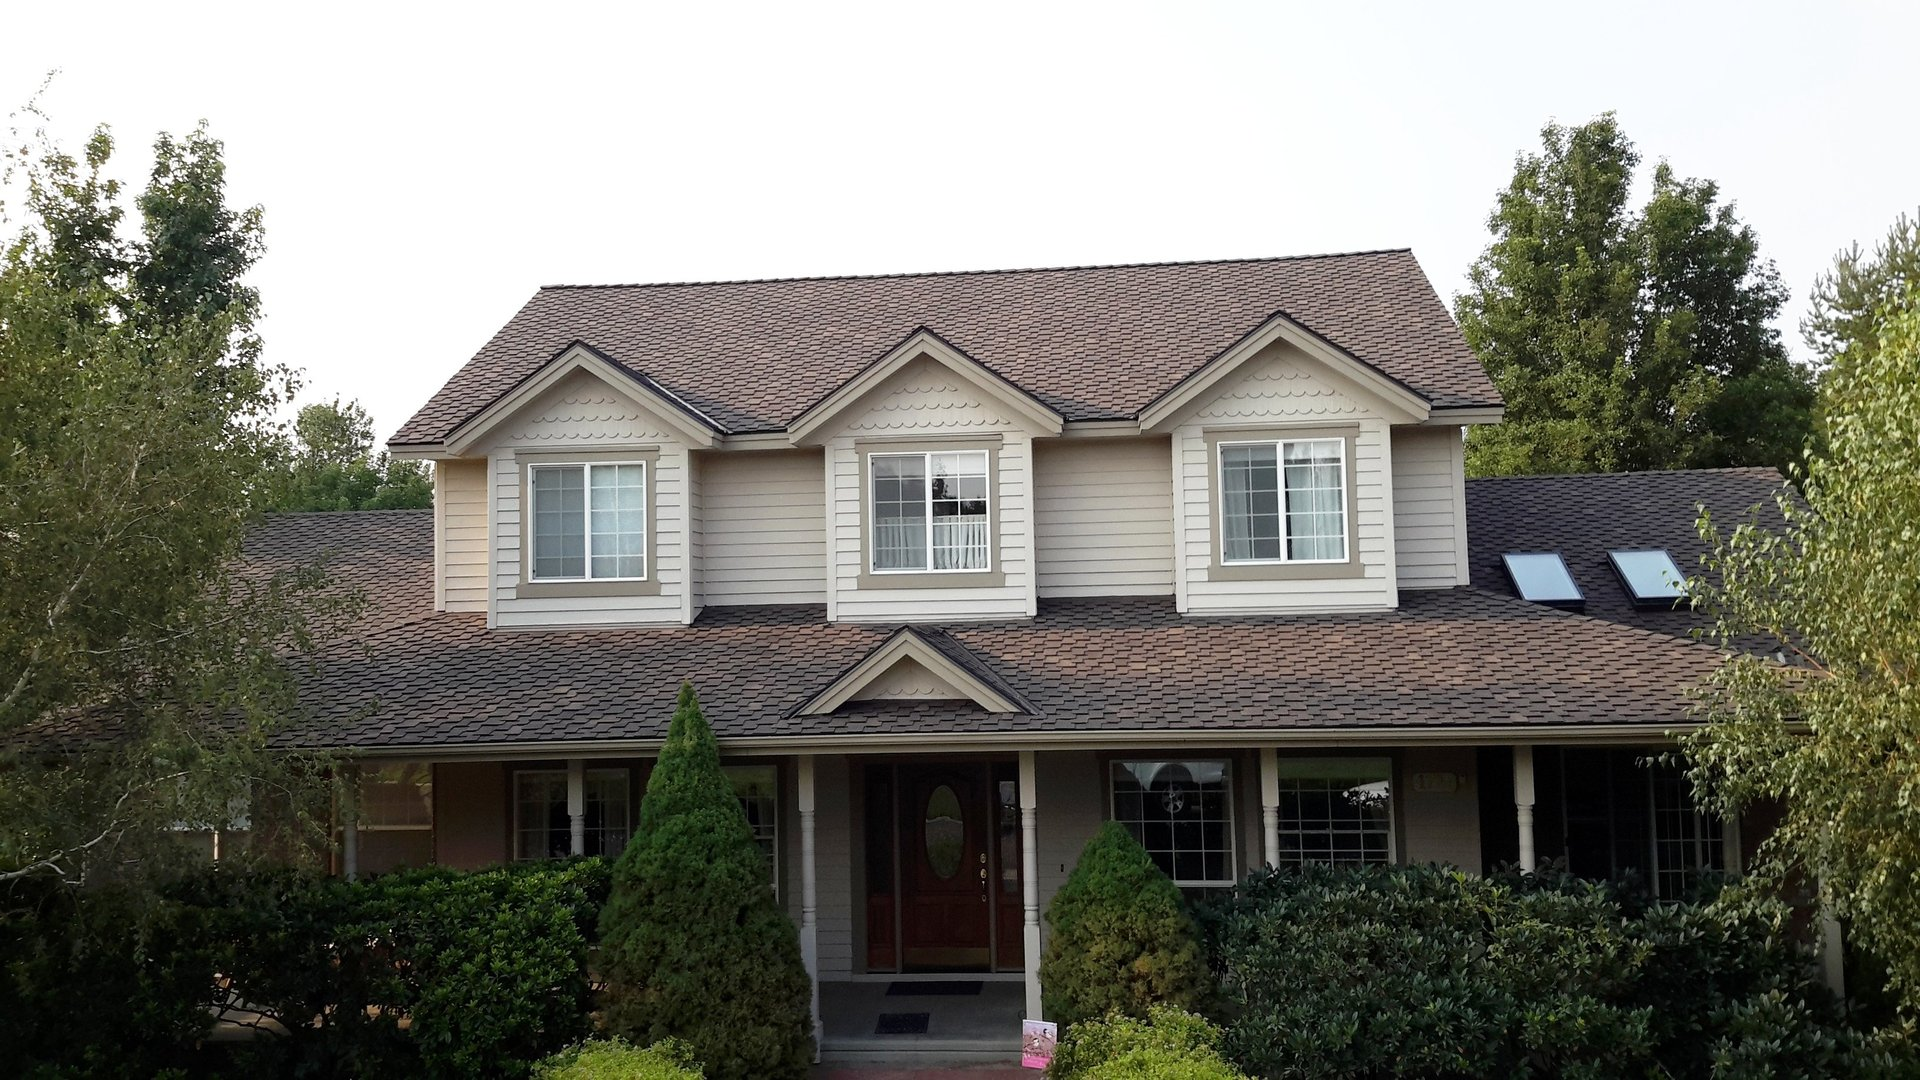 Idaho Roofing Contractors In Boise Id 83714